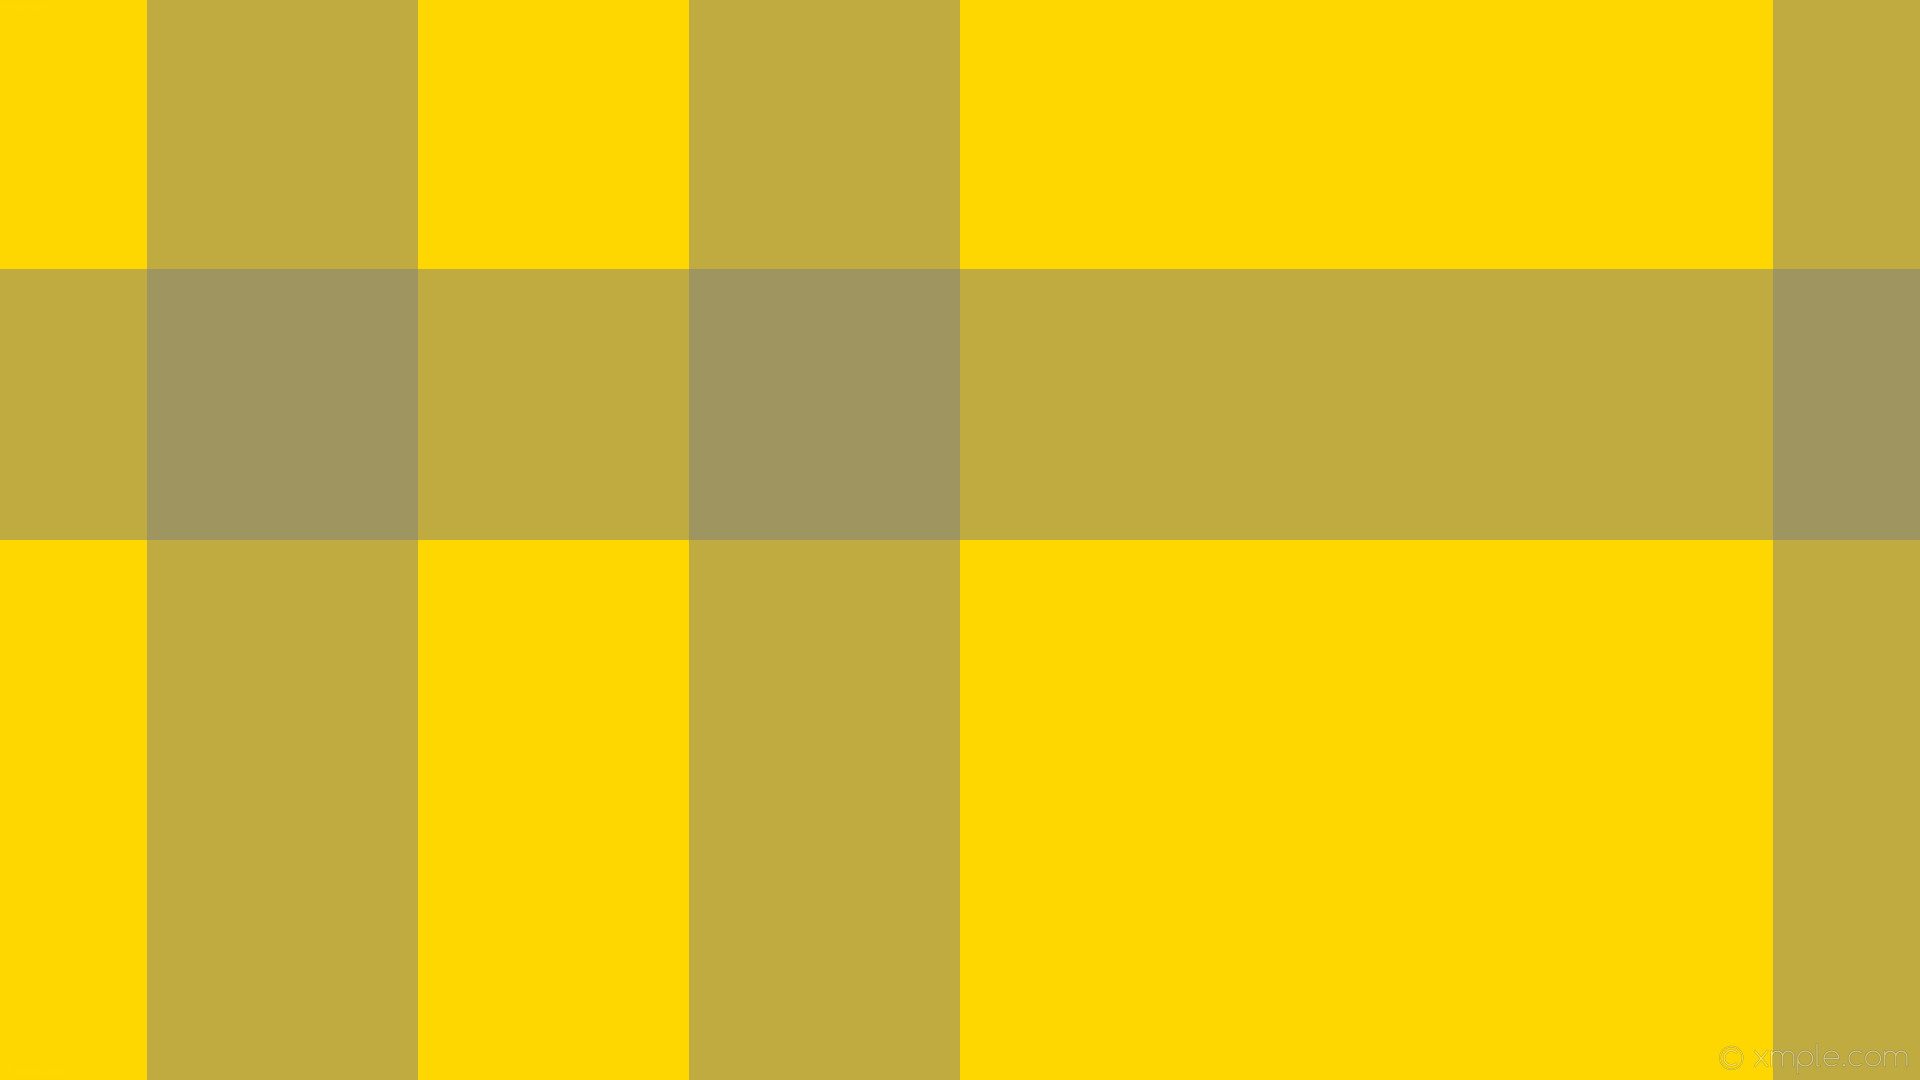 1920x1080 wallpaper gingham striped dual grey yellow gold gray #ffd700 #808080 180°  271px